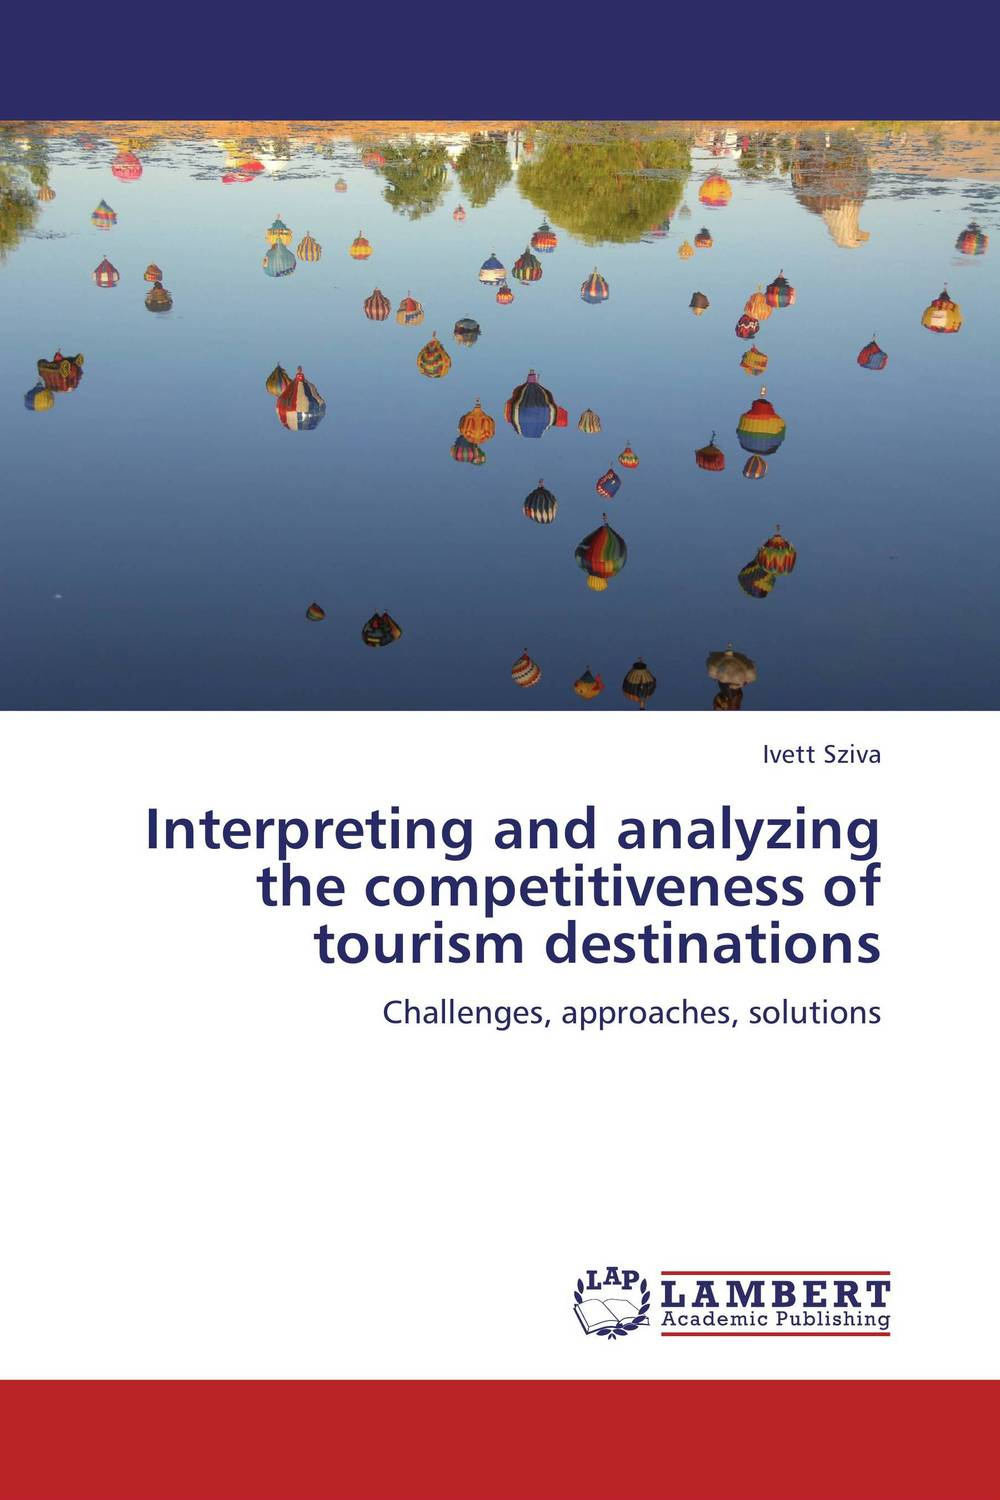 Interpreting and analyzing the competitiveness of tourism destinations